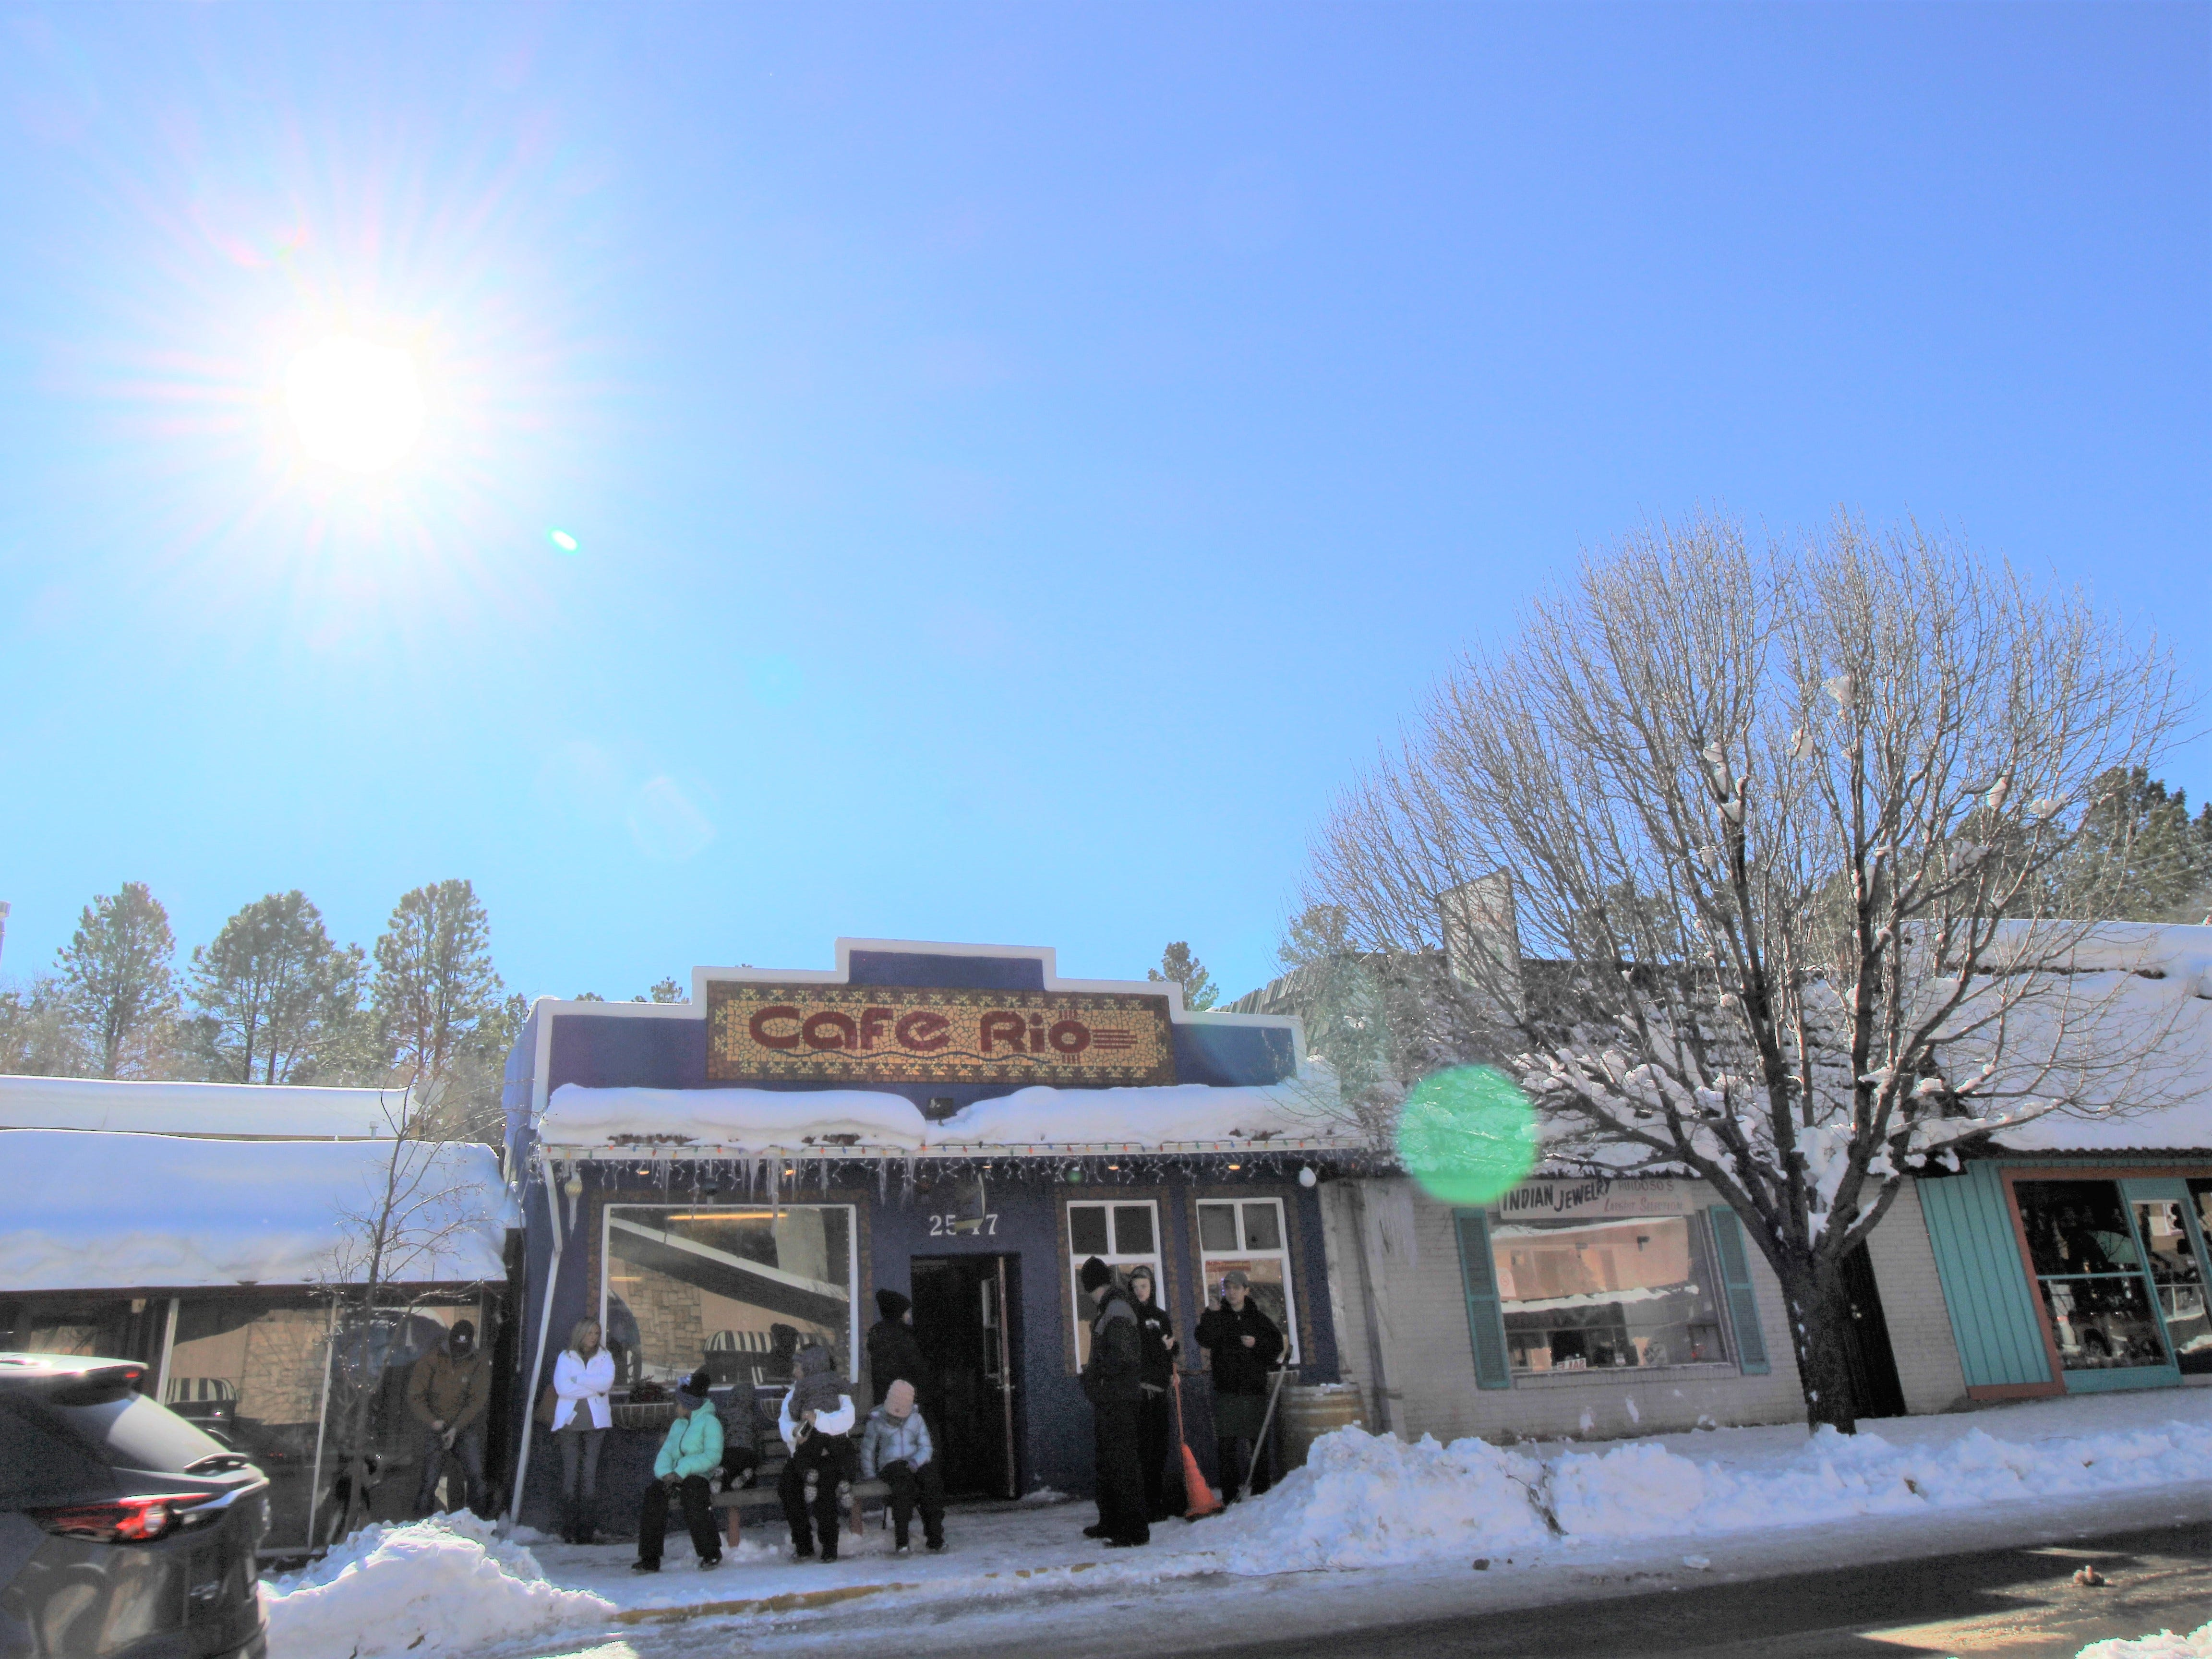 Sleet, snow, nor ice kept visitors from hitting midtown Ruidoso after a major snow storm.